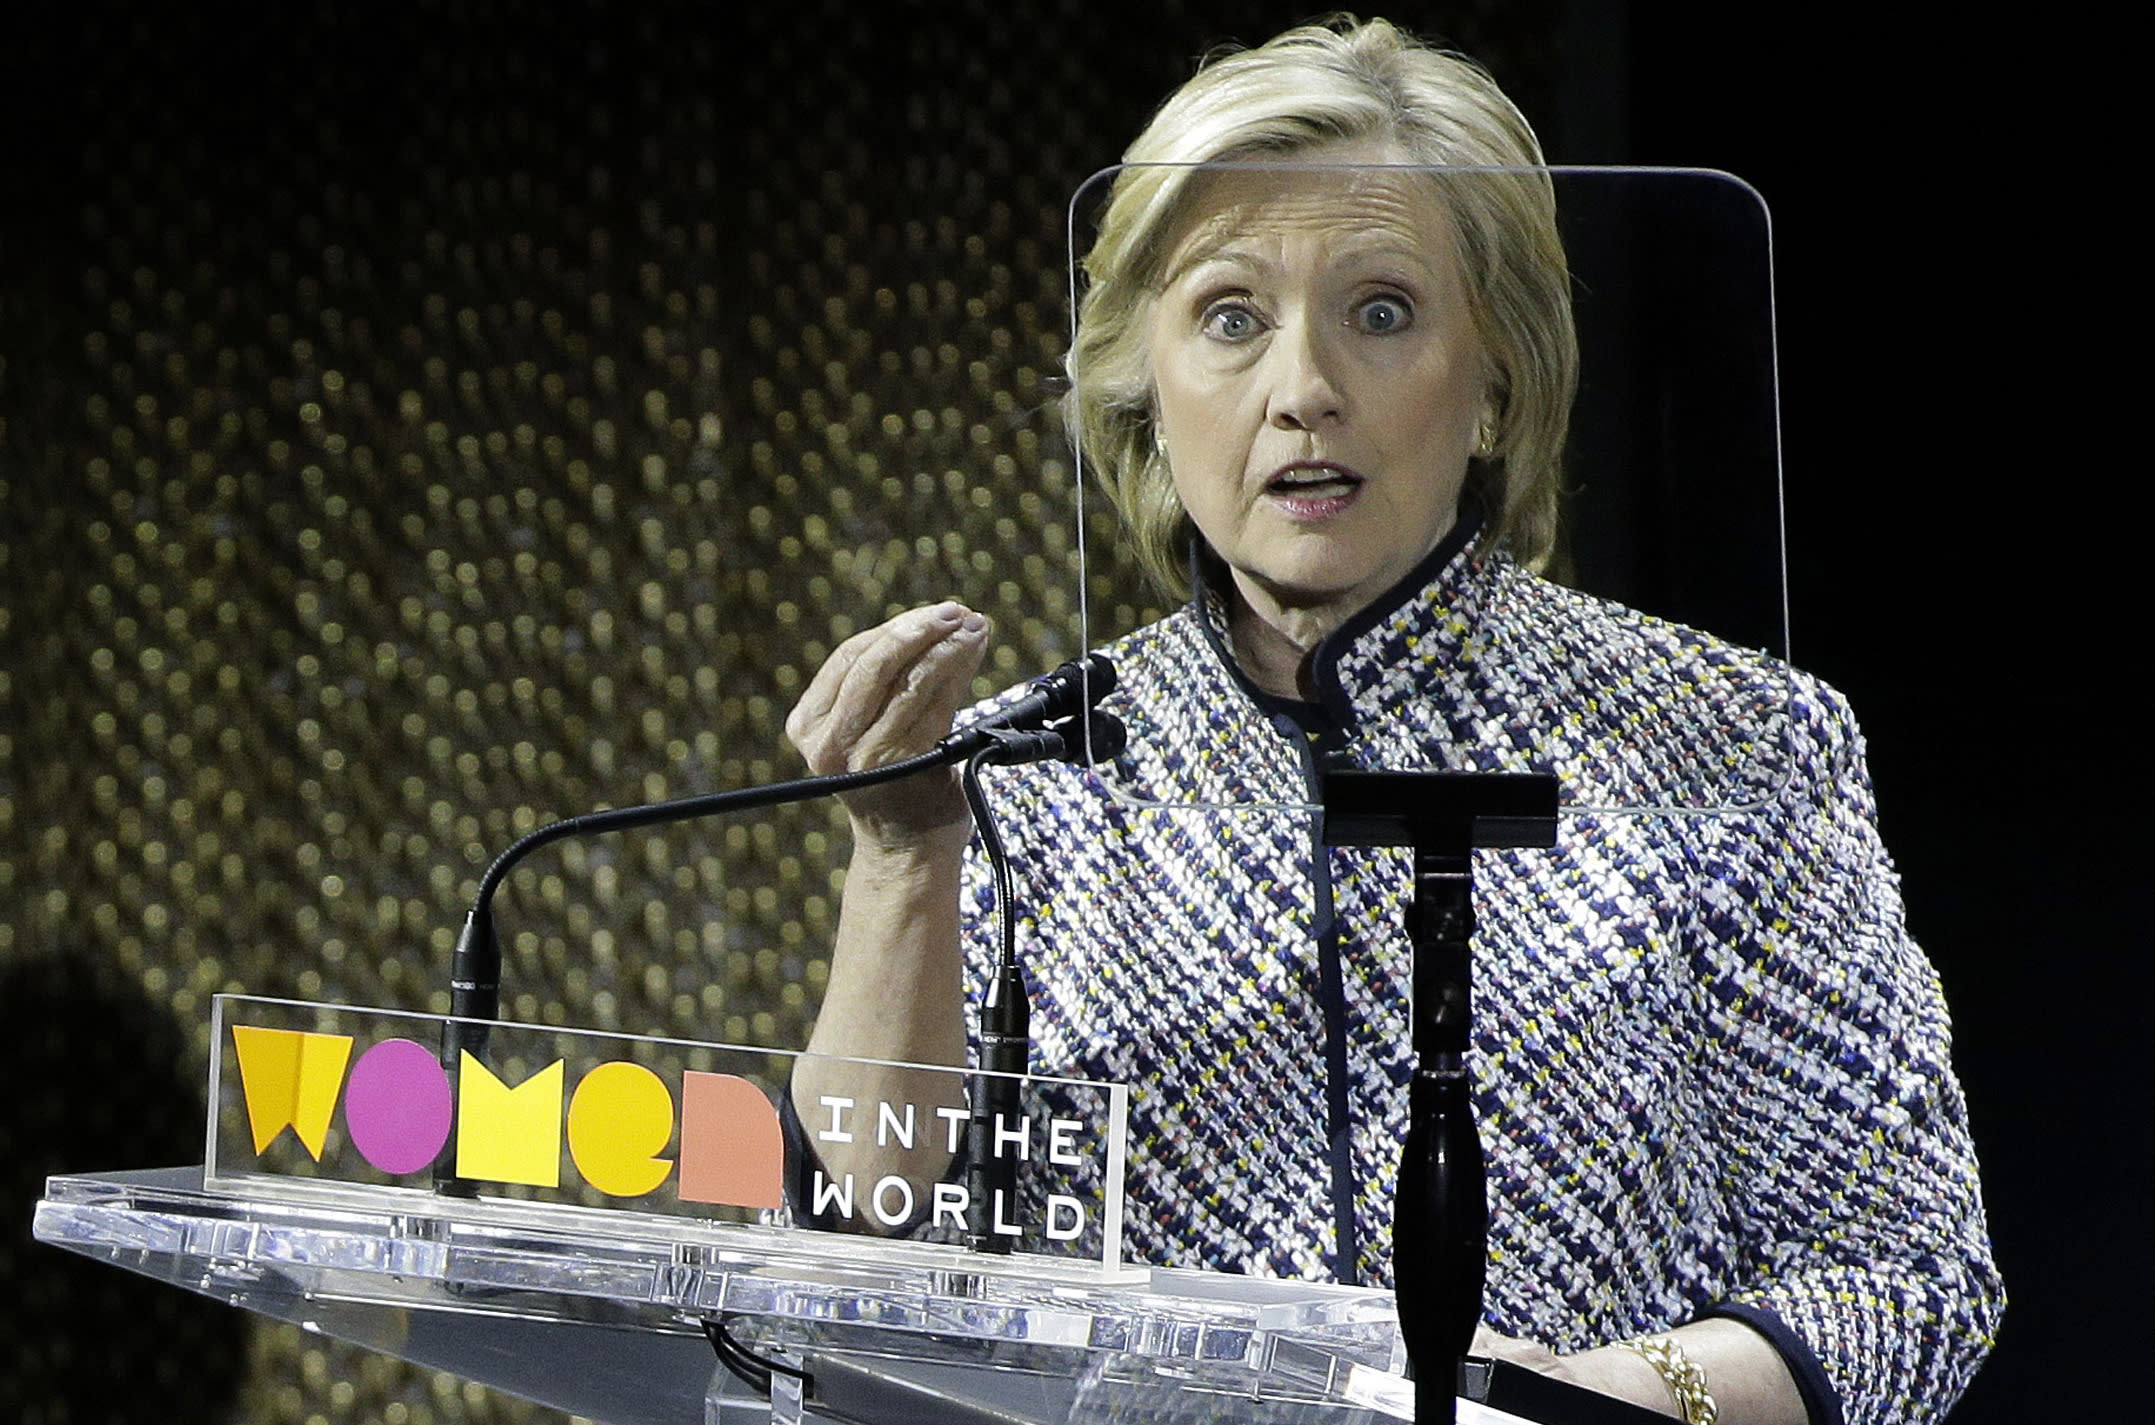 Boone Pickens: Hillary Clinton will drop out of 2016 race